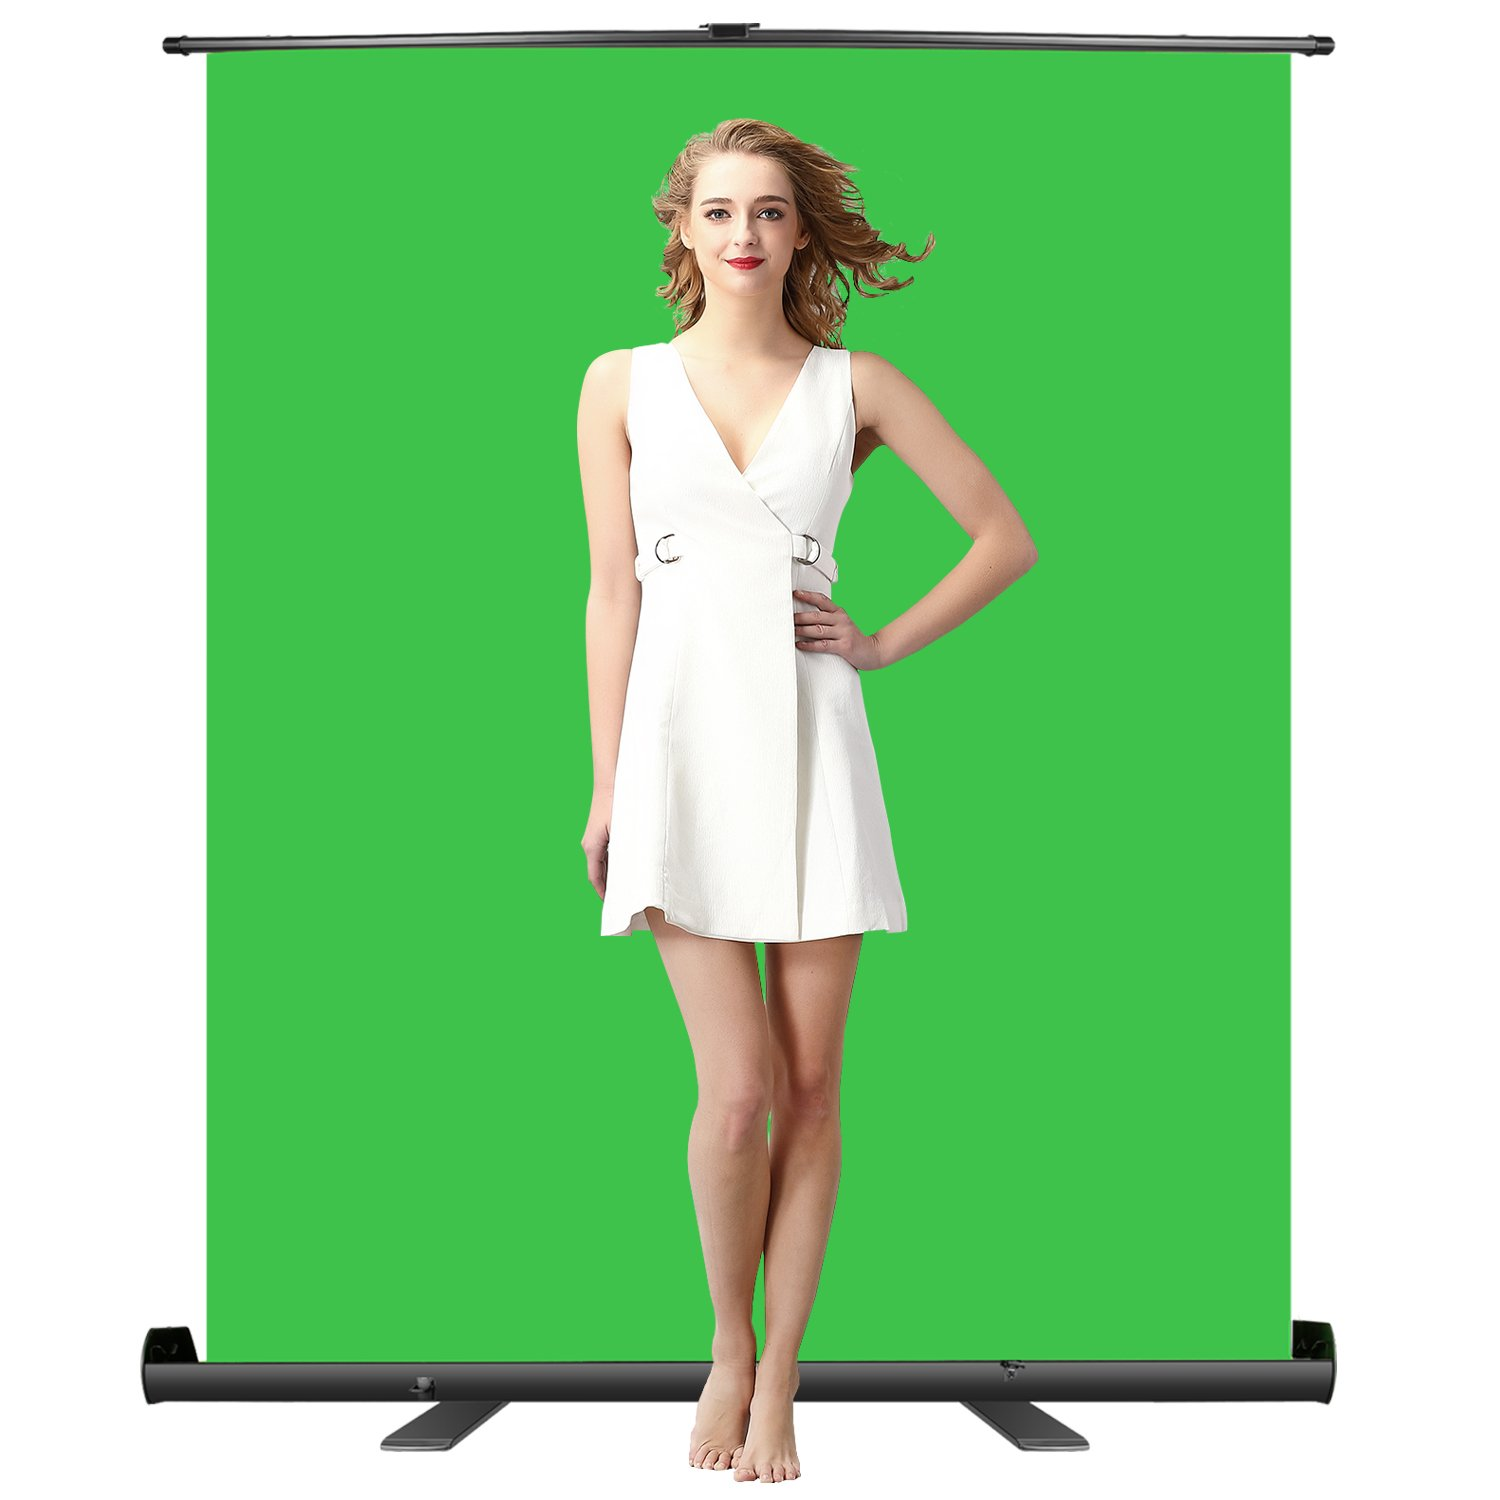 Neewer Green Screen Backdrop, Pull-up Style, Portable Collapsible Chromakey Background with Auto-locking Frame, Wrinkle-resistant Fabric,Solid Aluminium Base, for Photo Video, Live Game,Virtual Studio by Neewer (Image #2)